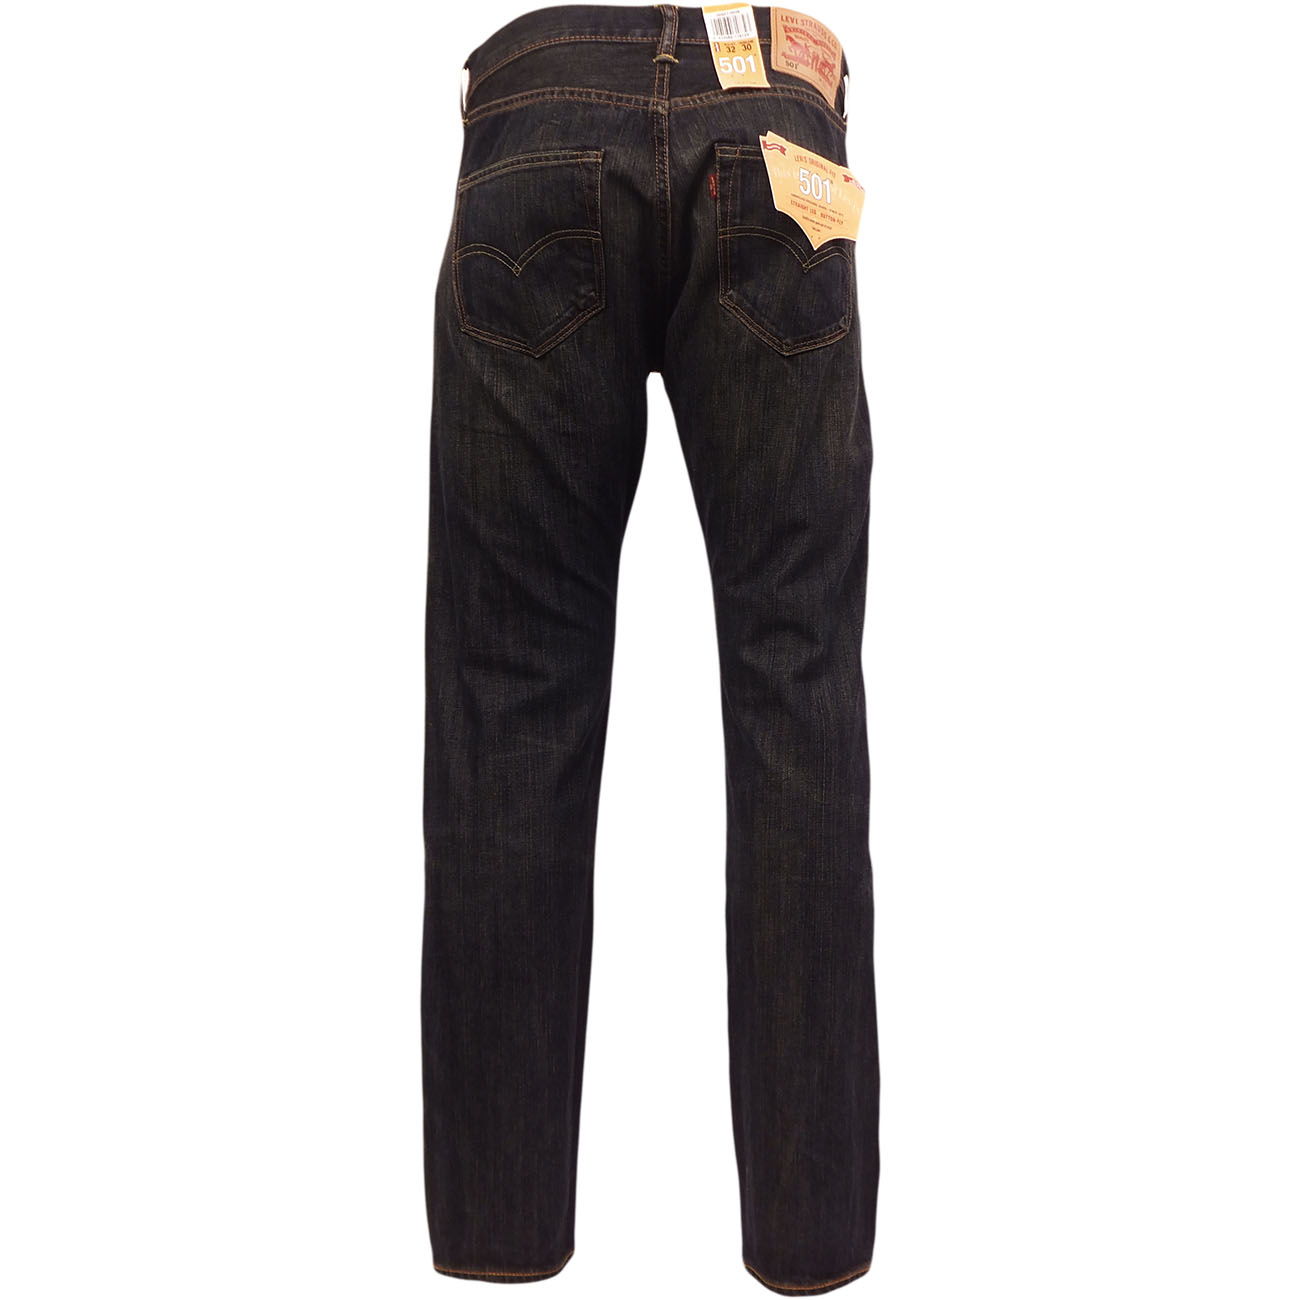 Shop a great selection of Levi's Men's Jeans at Nordstrom Rack. Find designer Levi's Men's Jeans up to 70% off and get free shipping on orders over $